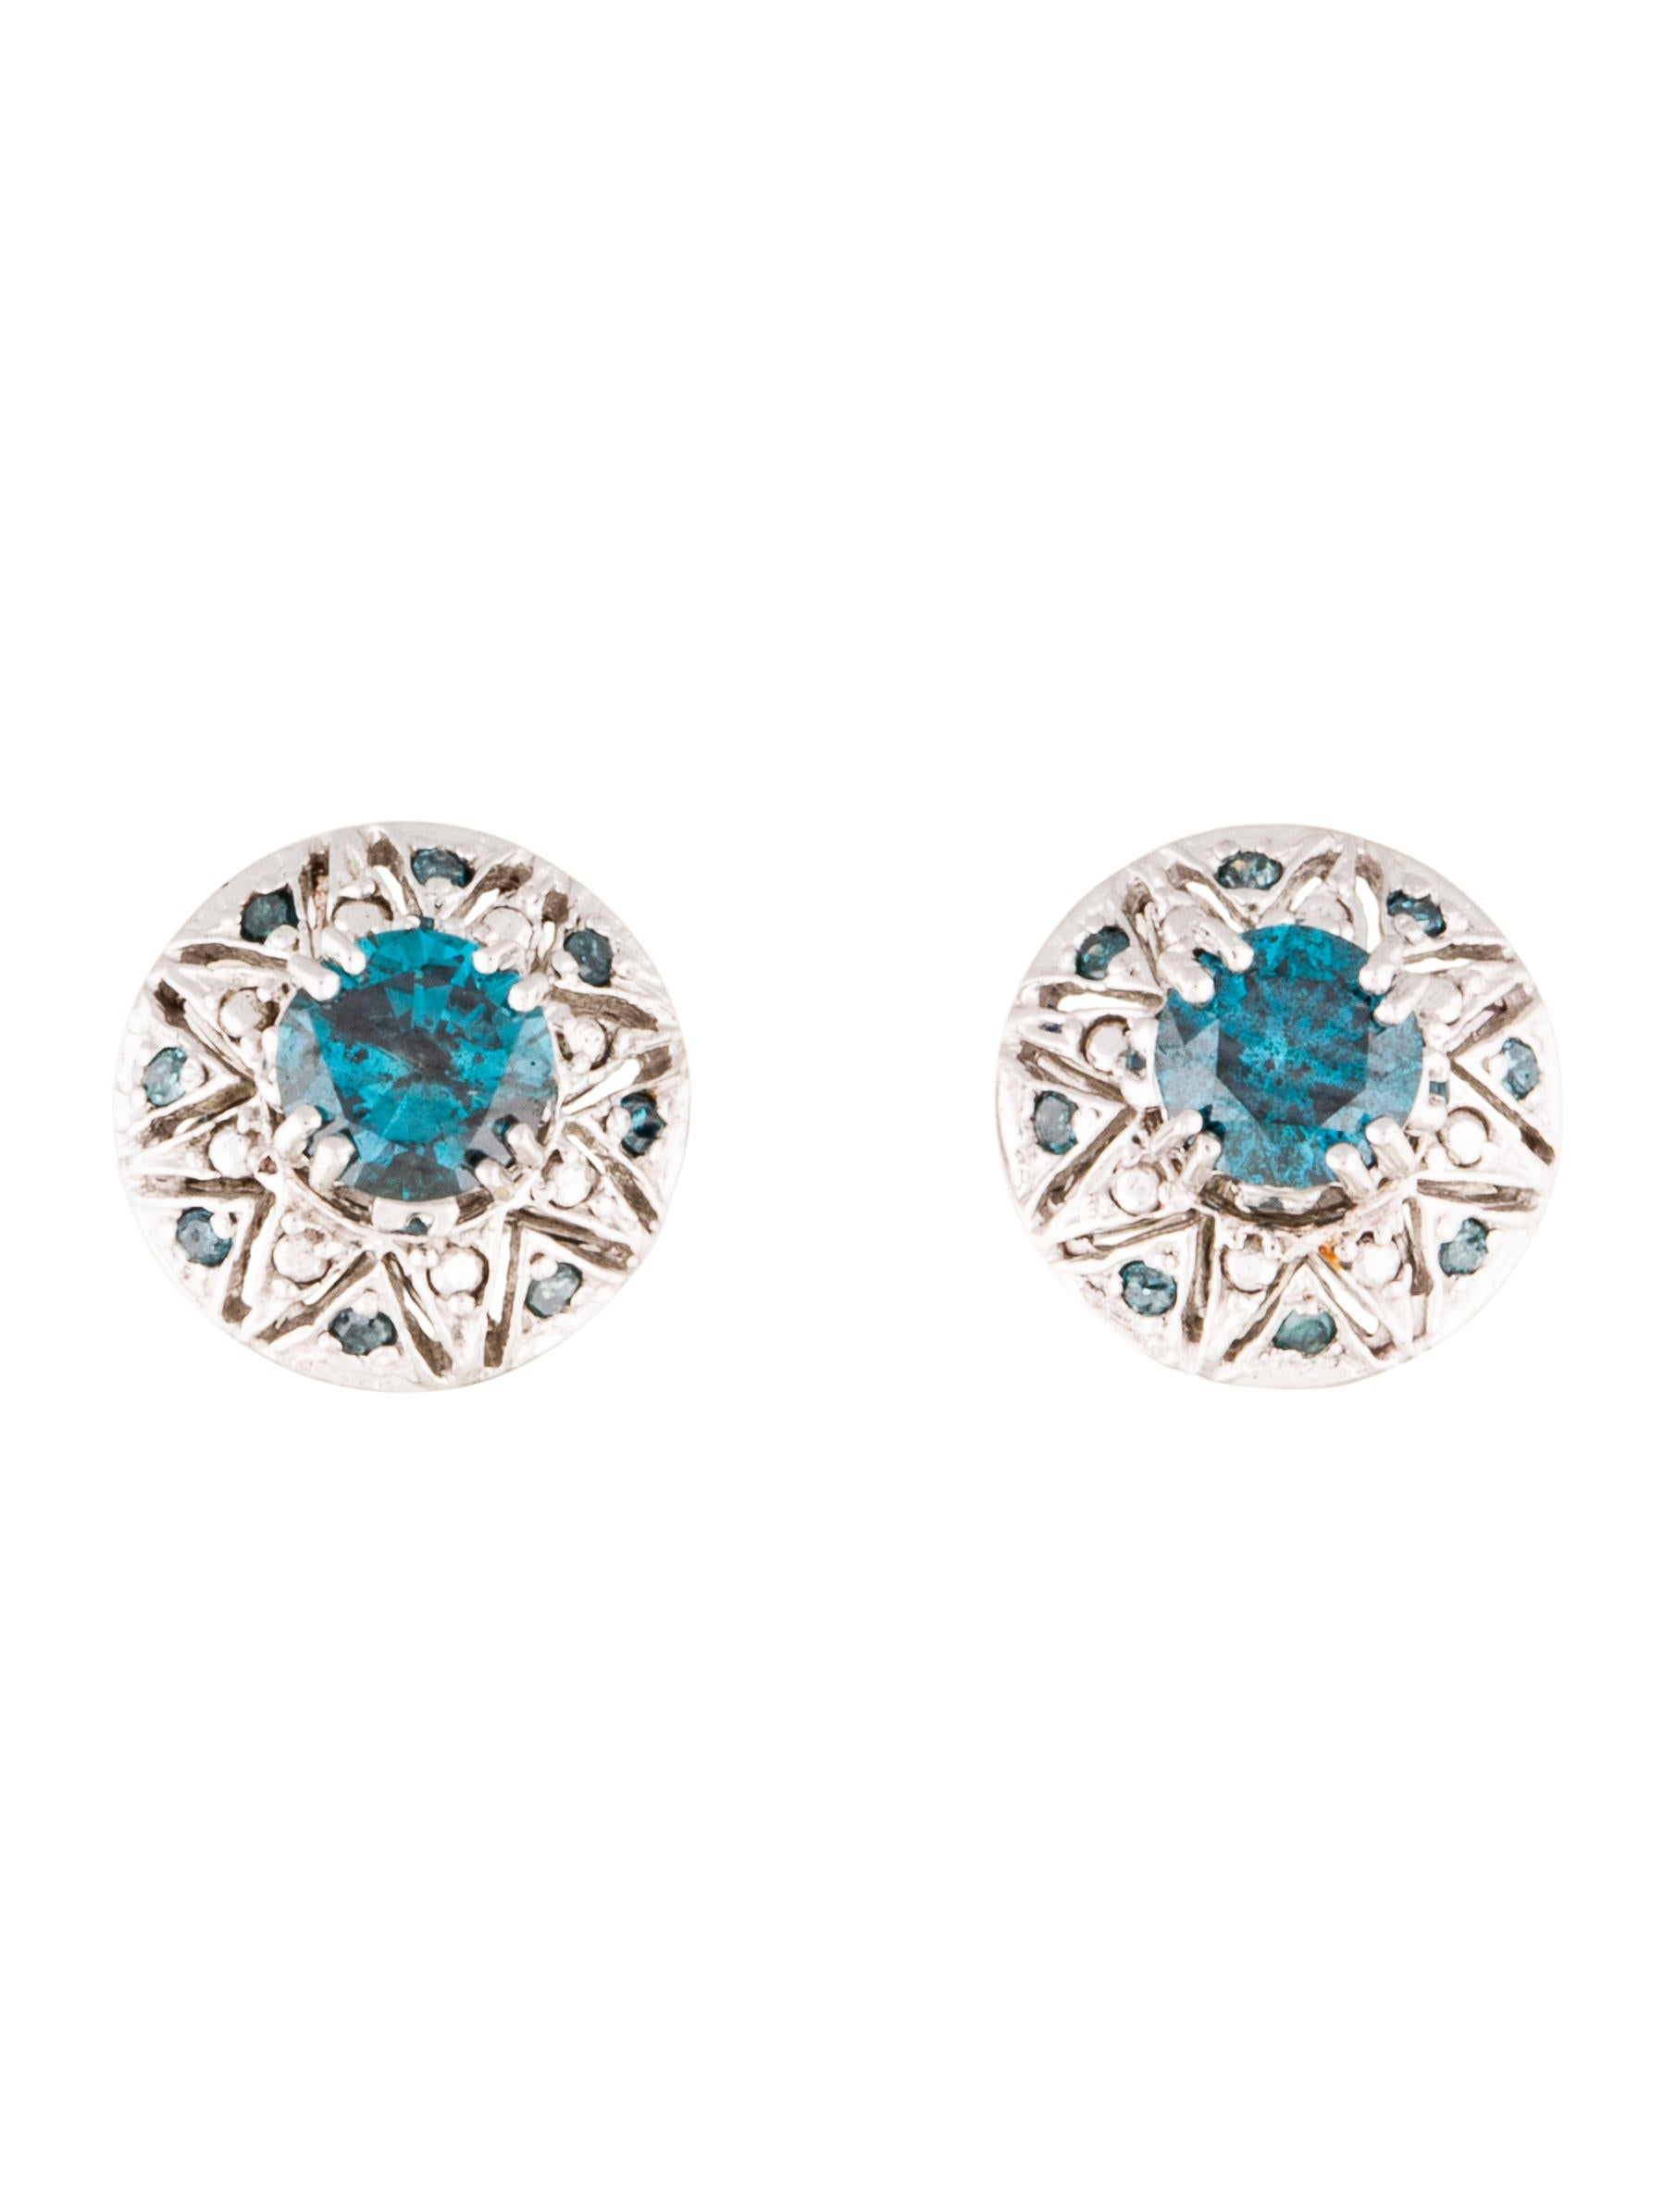 collections classic a pair stud blue studs graff earrings drop of pear diamond shape